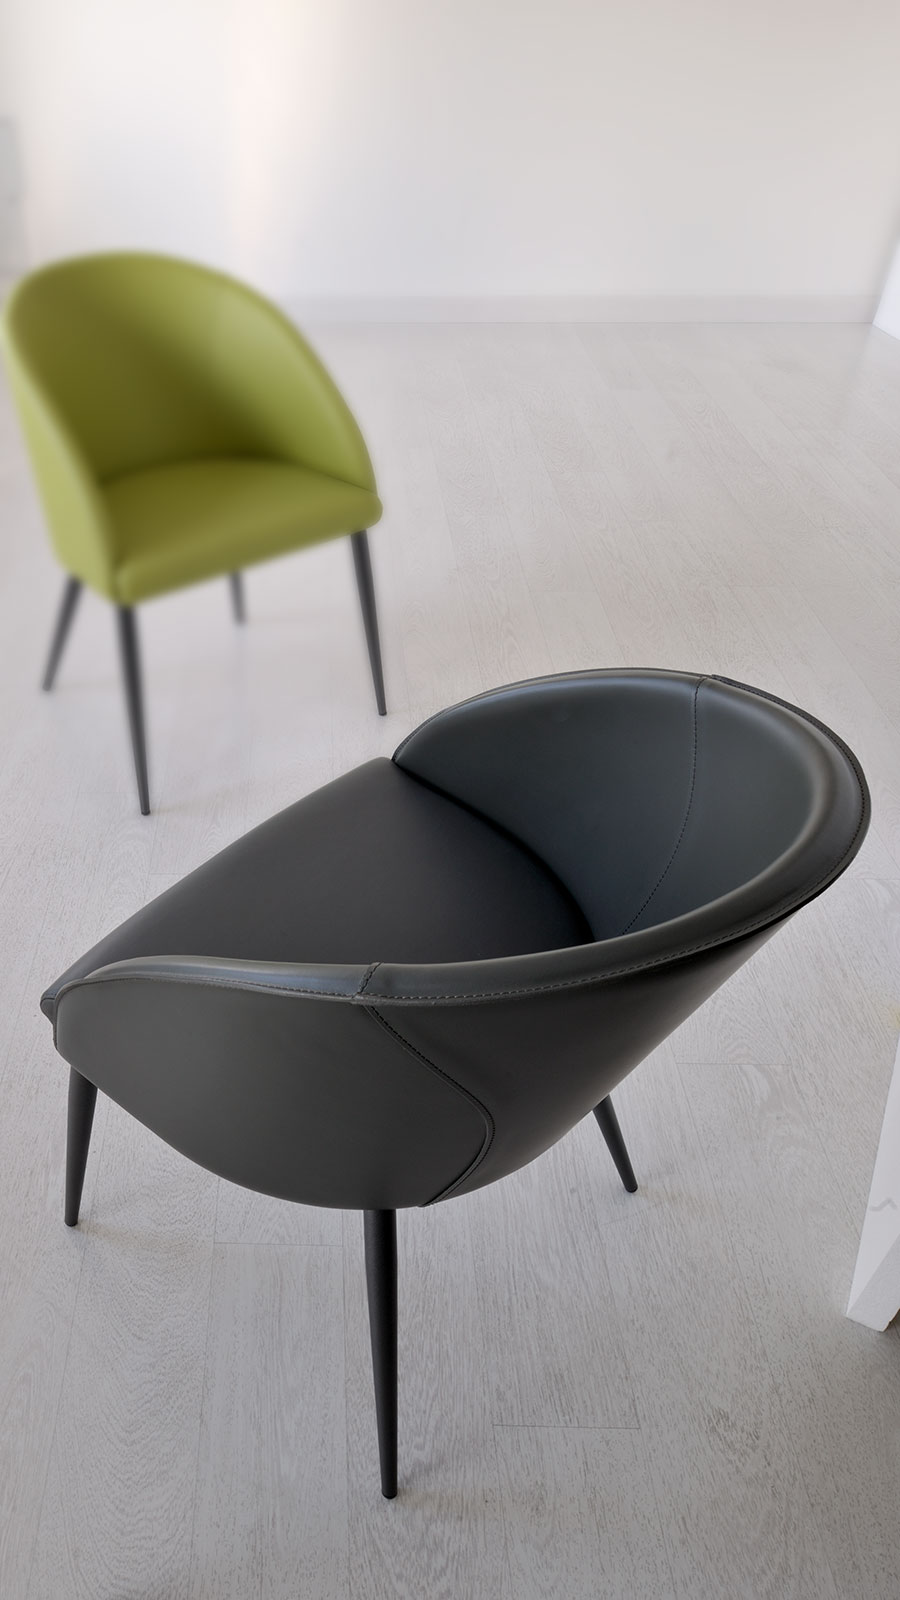 Furnish your home or office with this modern padded armchair. Seat and backrest upholstered with genuine leather. Metal grey feet. Shop online home delivery